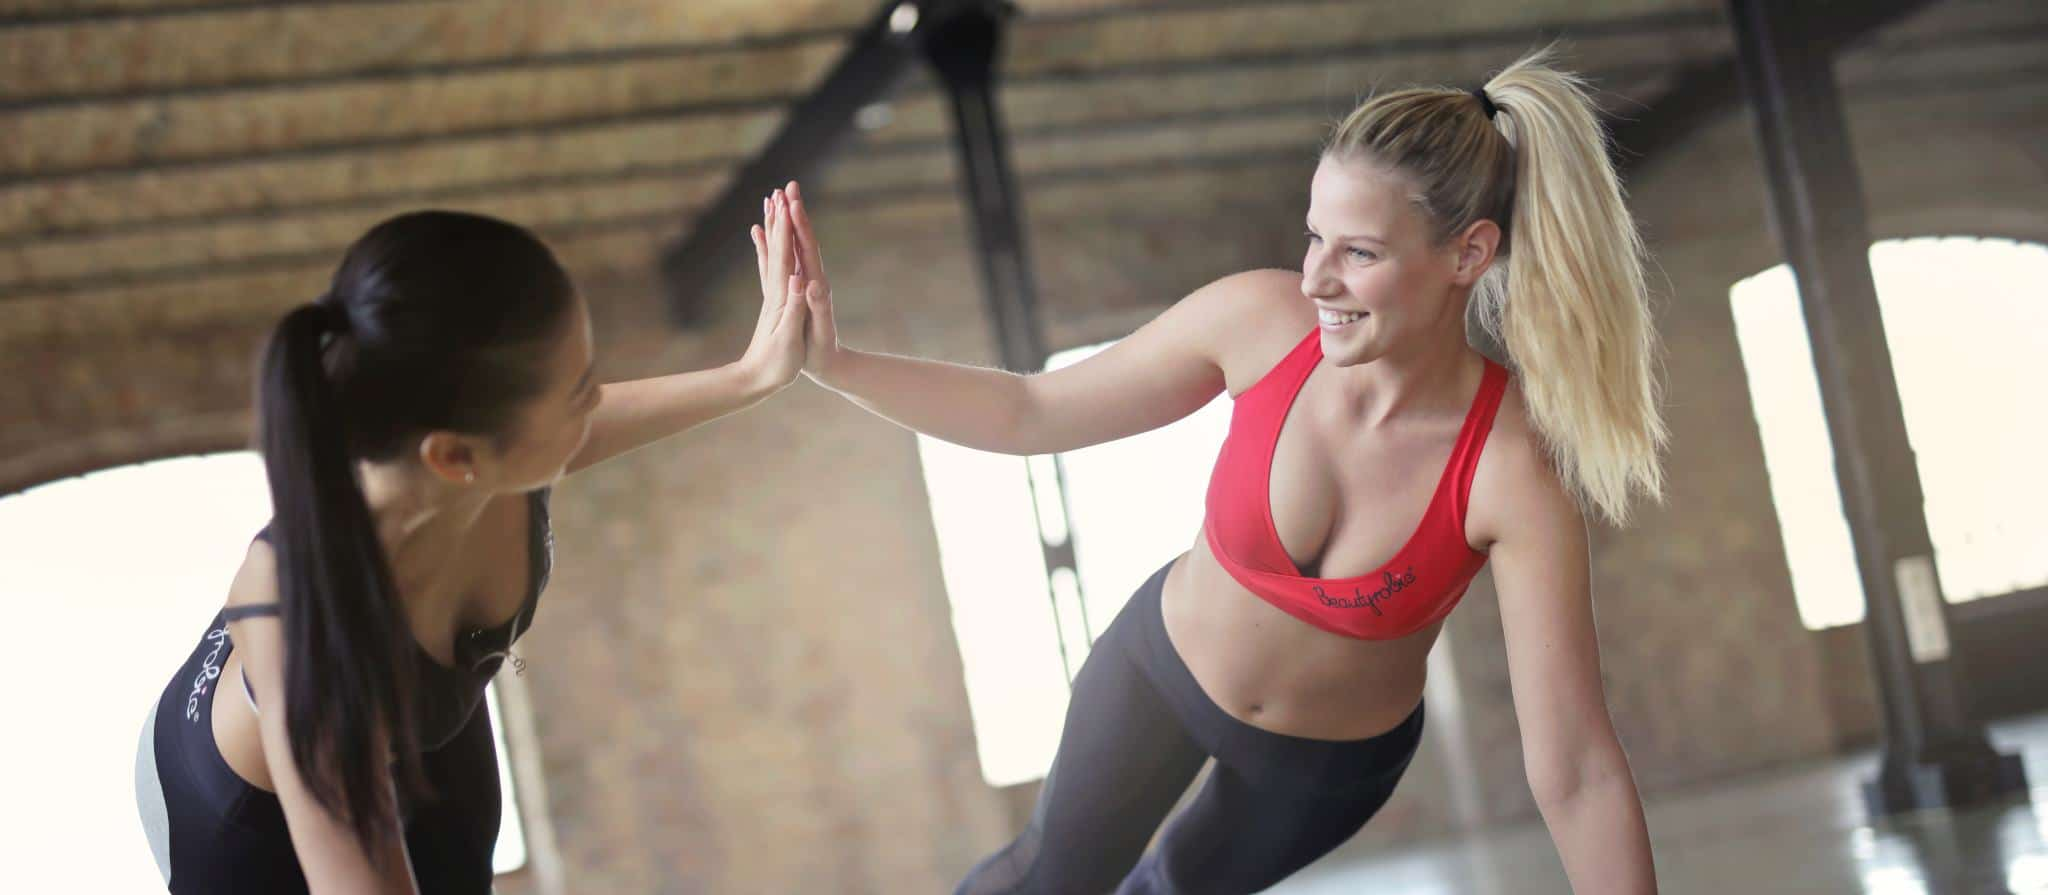 6 ways to motivate yourself to exercise